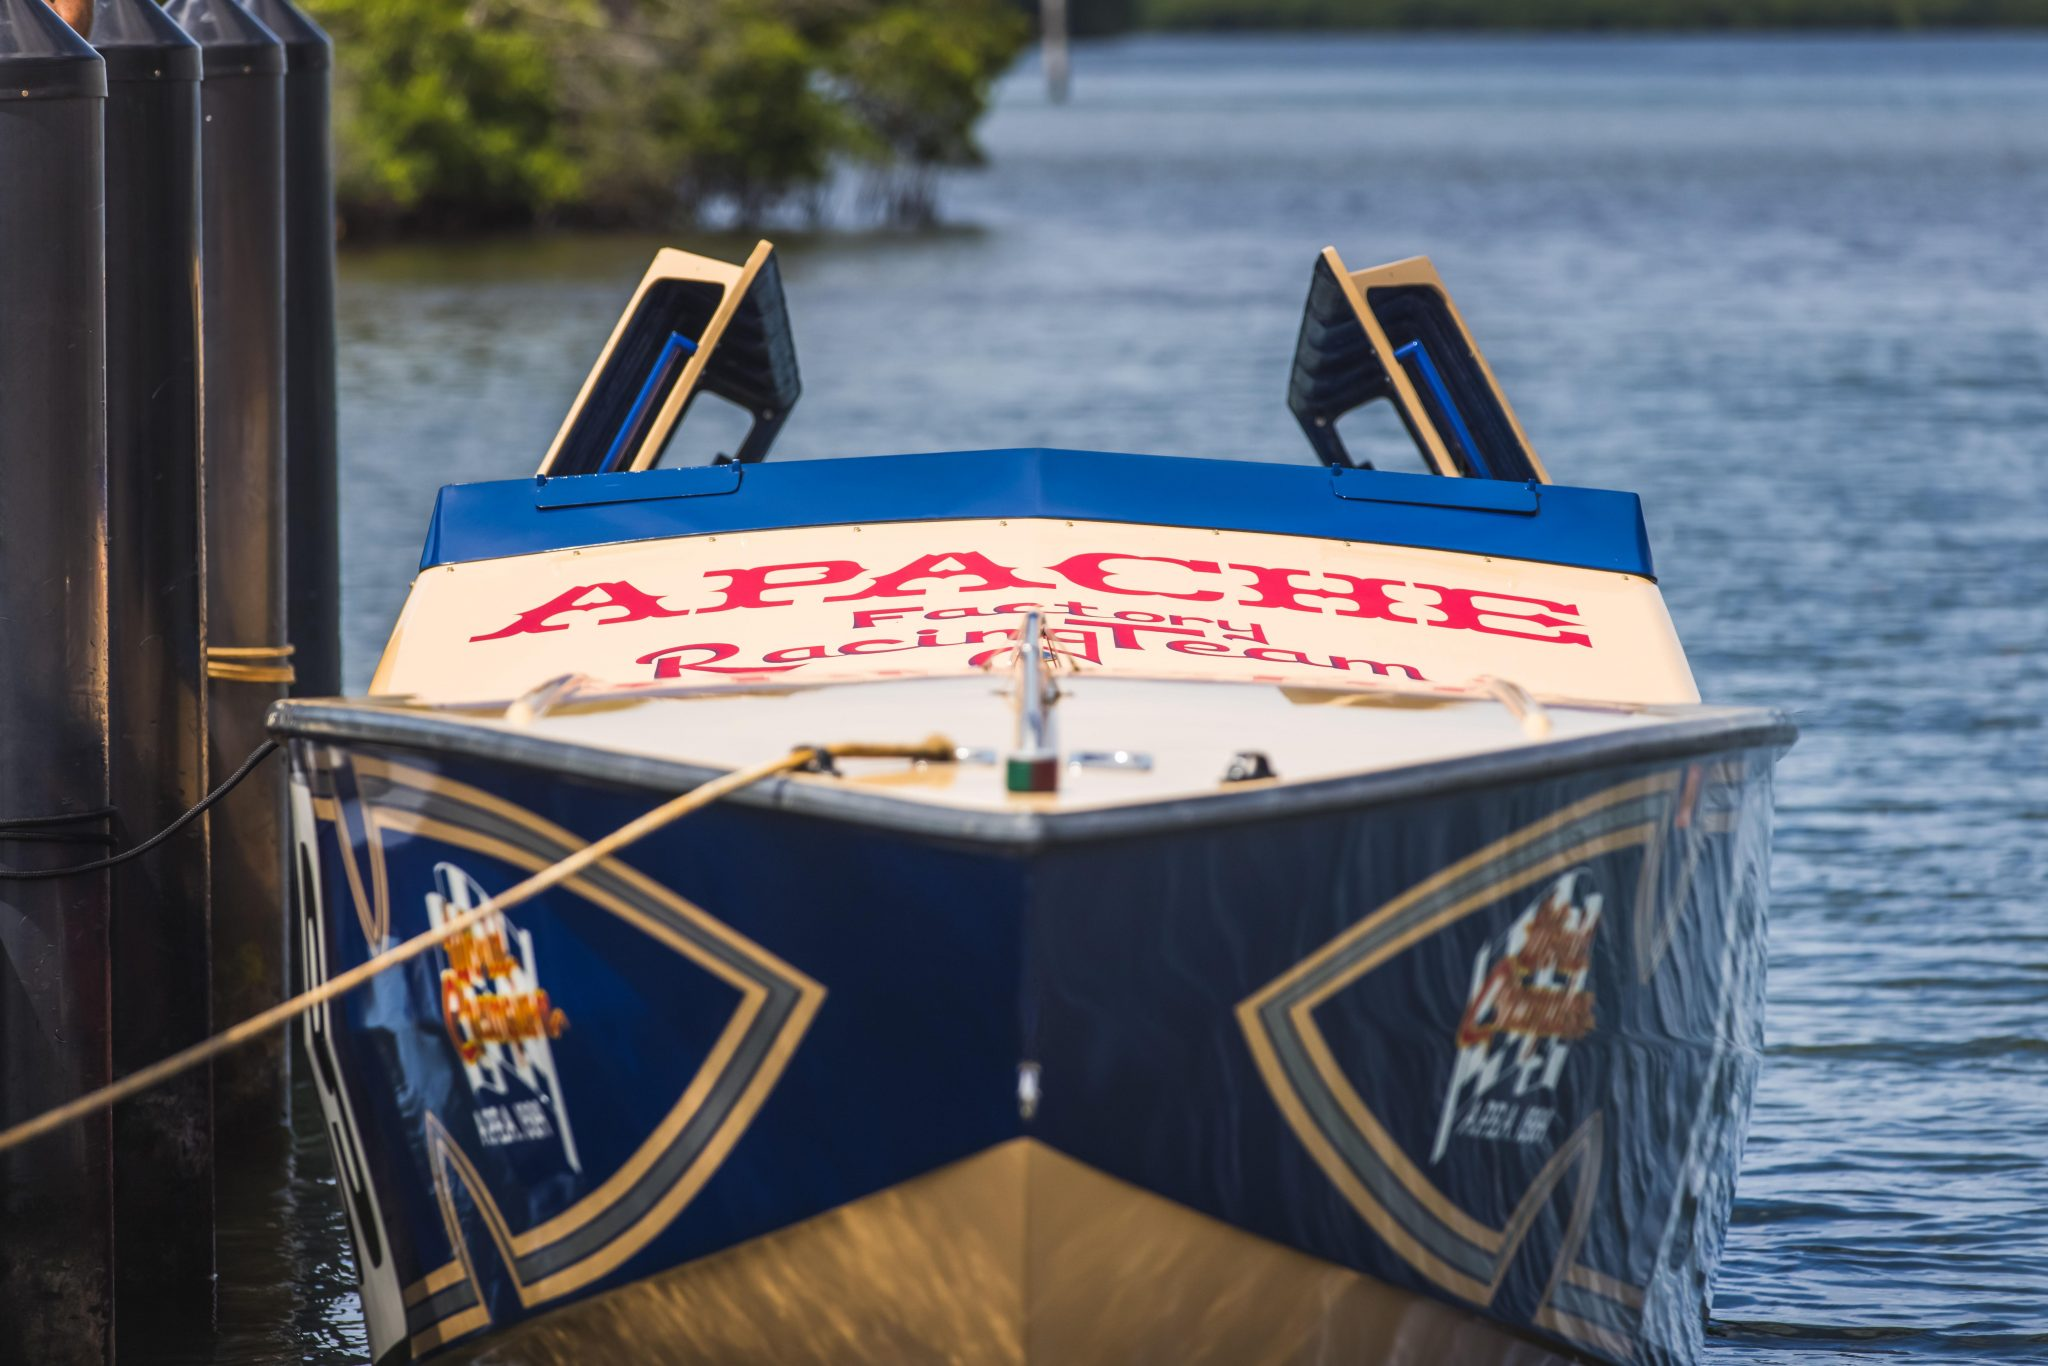 1984 Apache Offshore Powerboat Warpath front